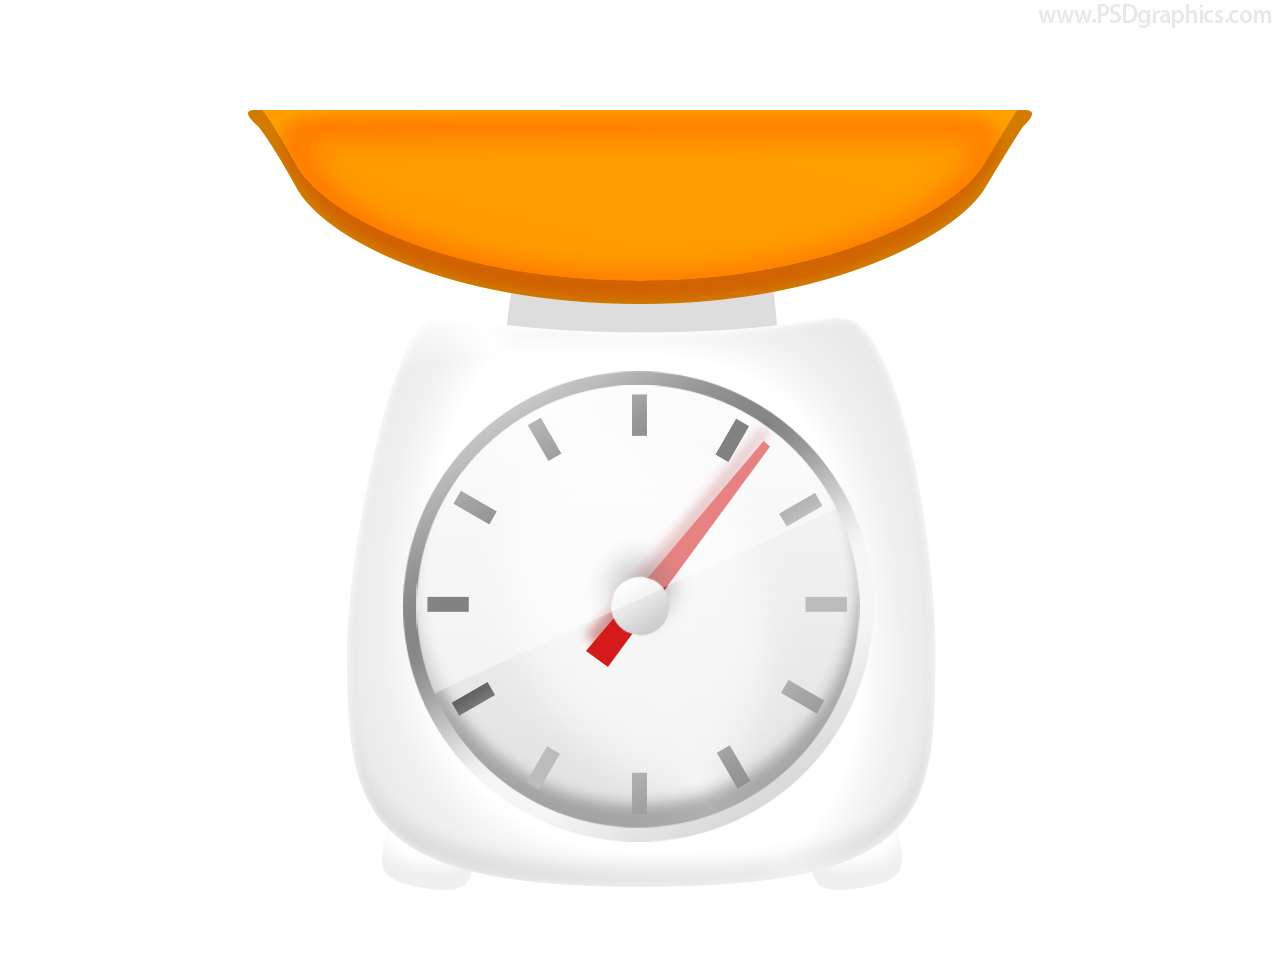 Kitchen Scale Icon (PSD) | PSDGraphics image #416